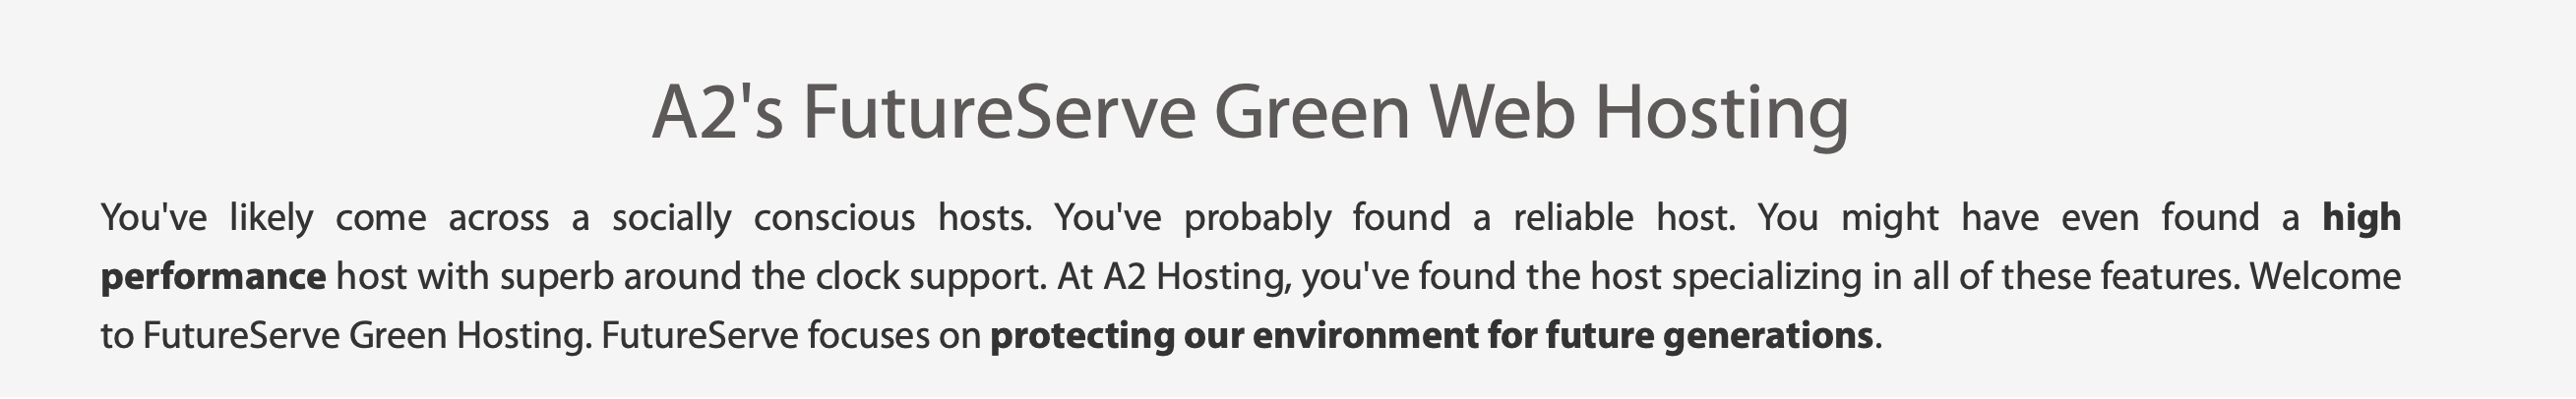 A2 Hosting Green Web